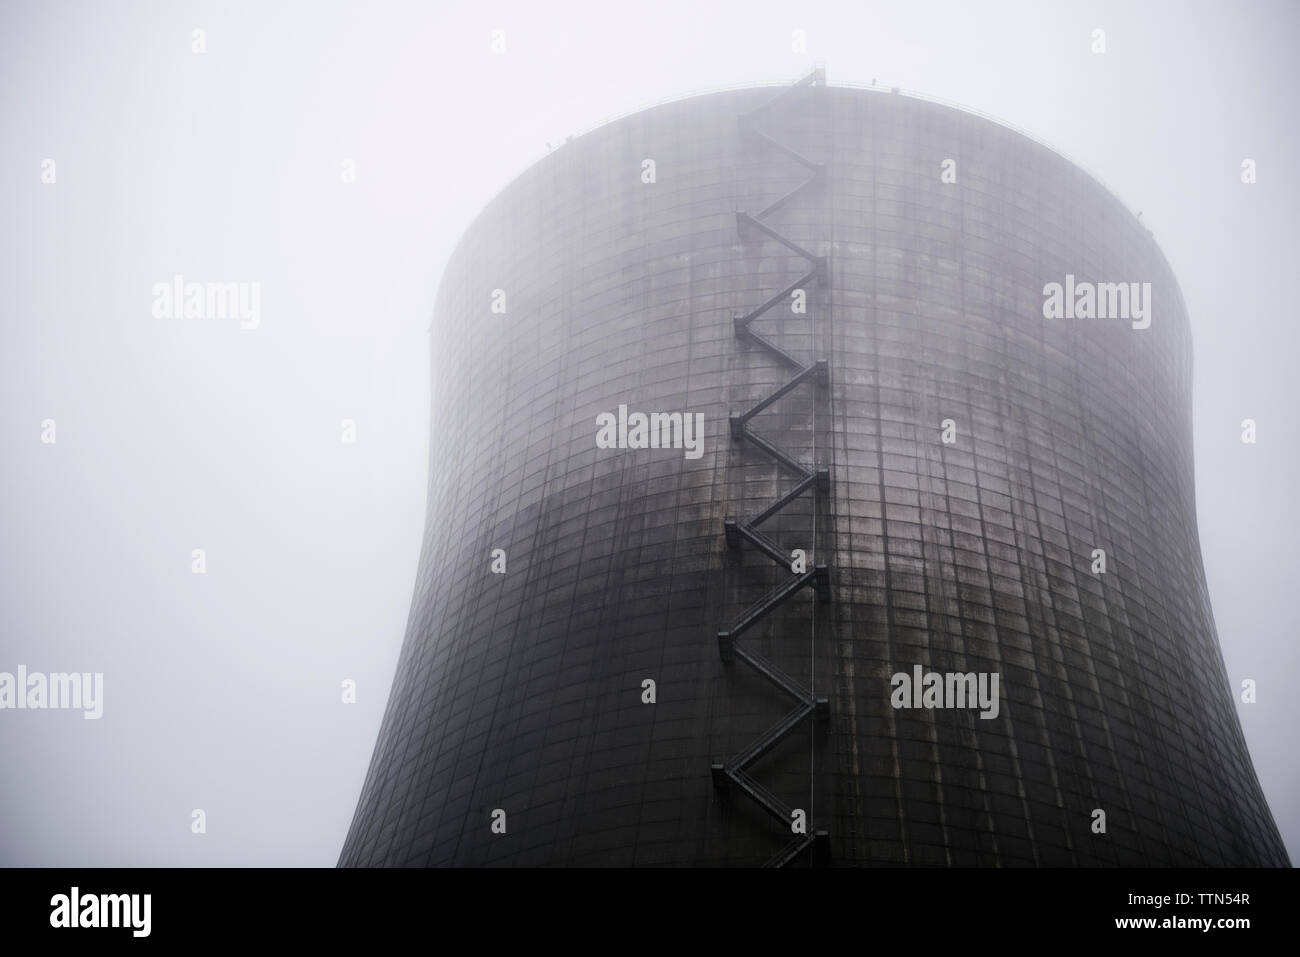 Low angle view of nuclear reactor in foggy weather - Stock Image